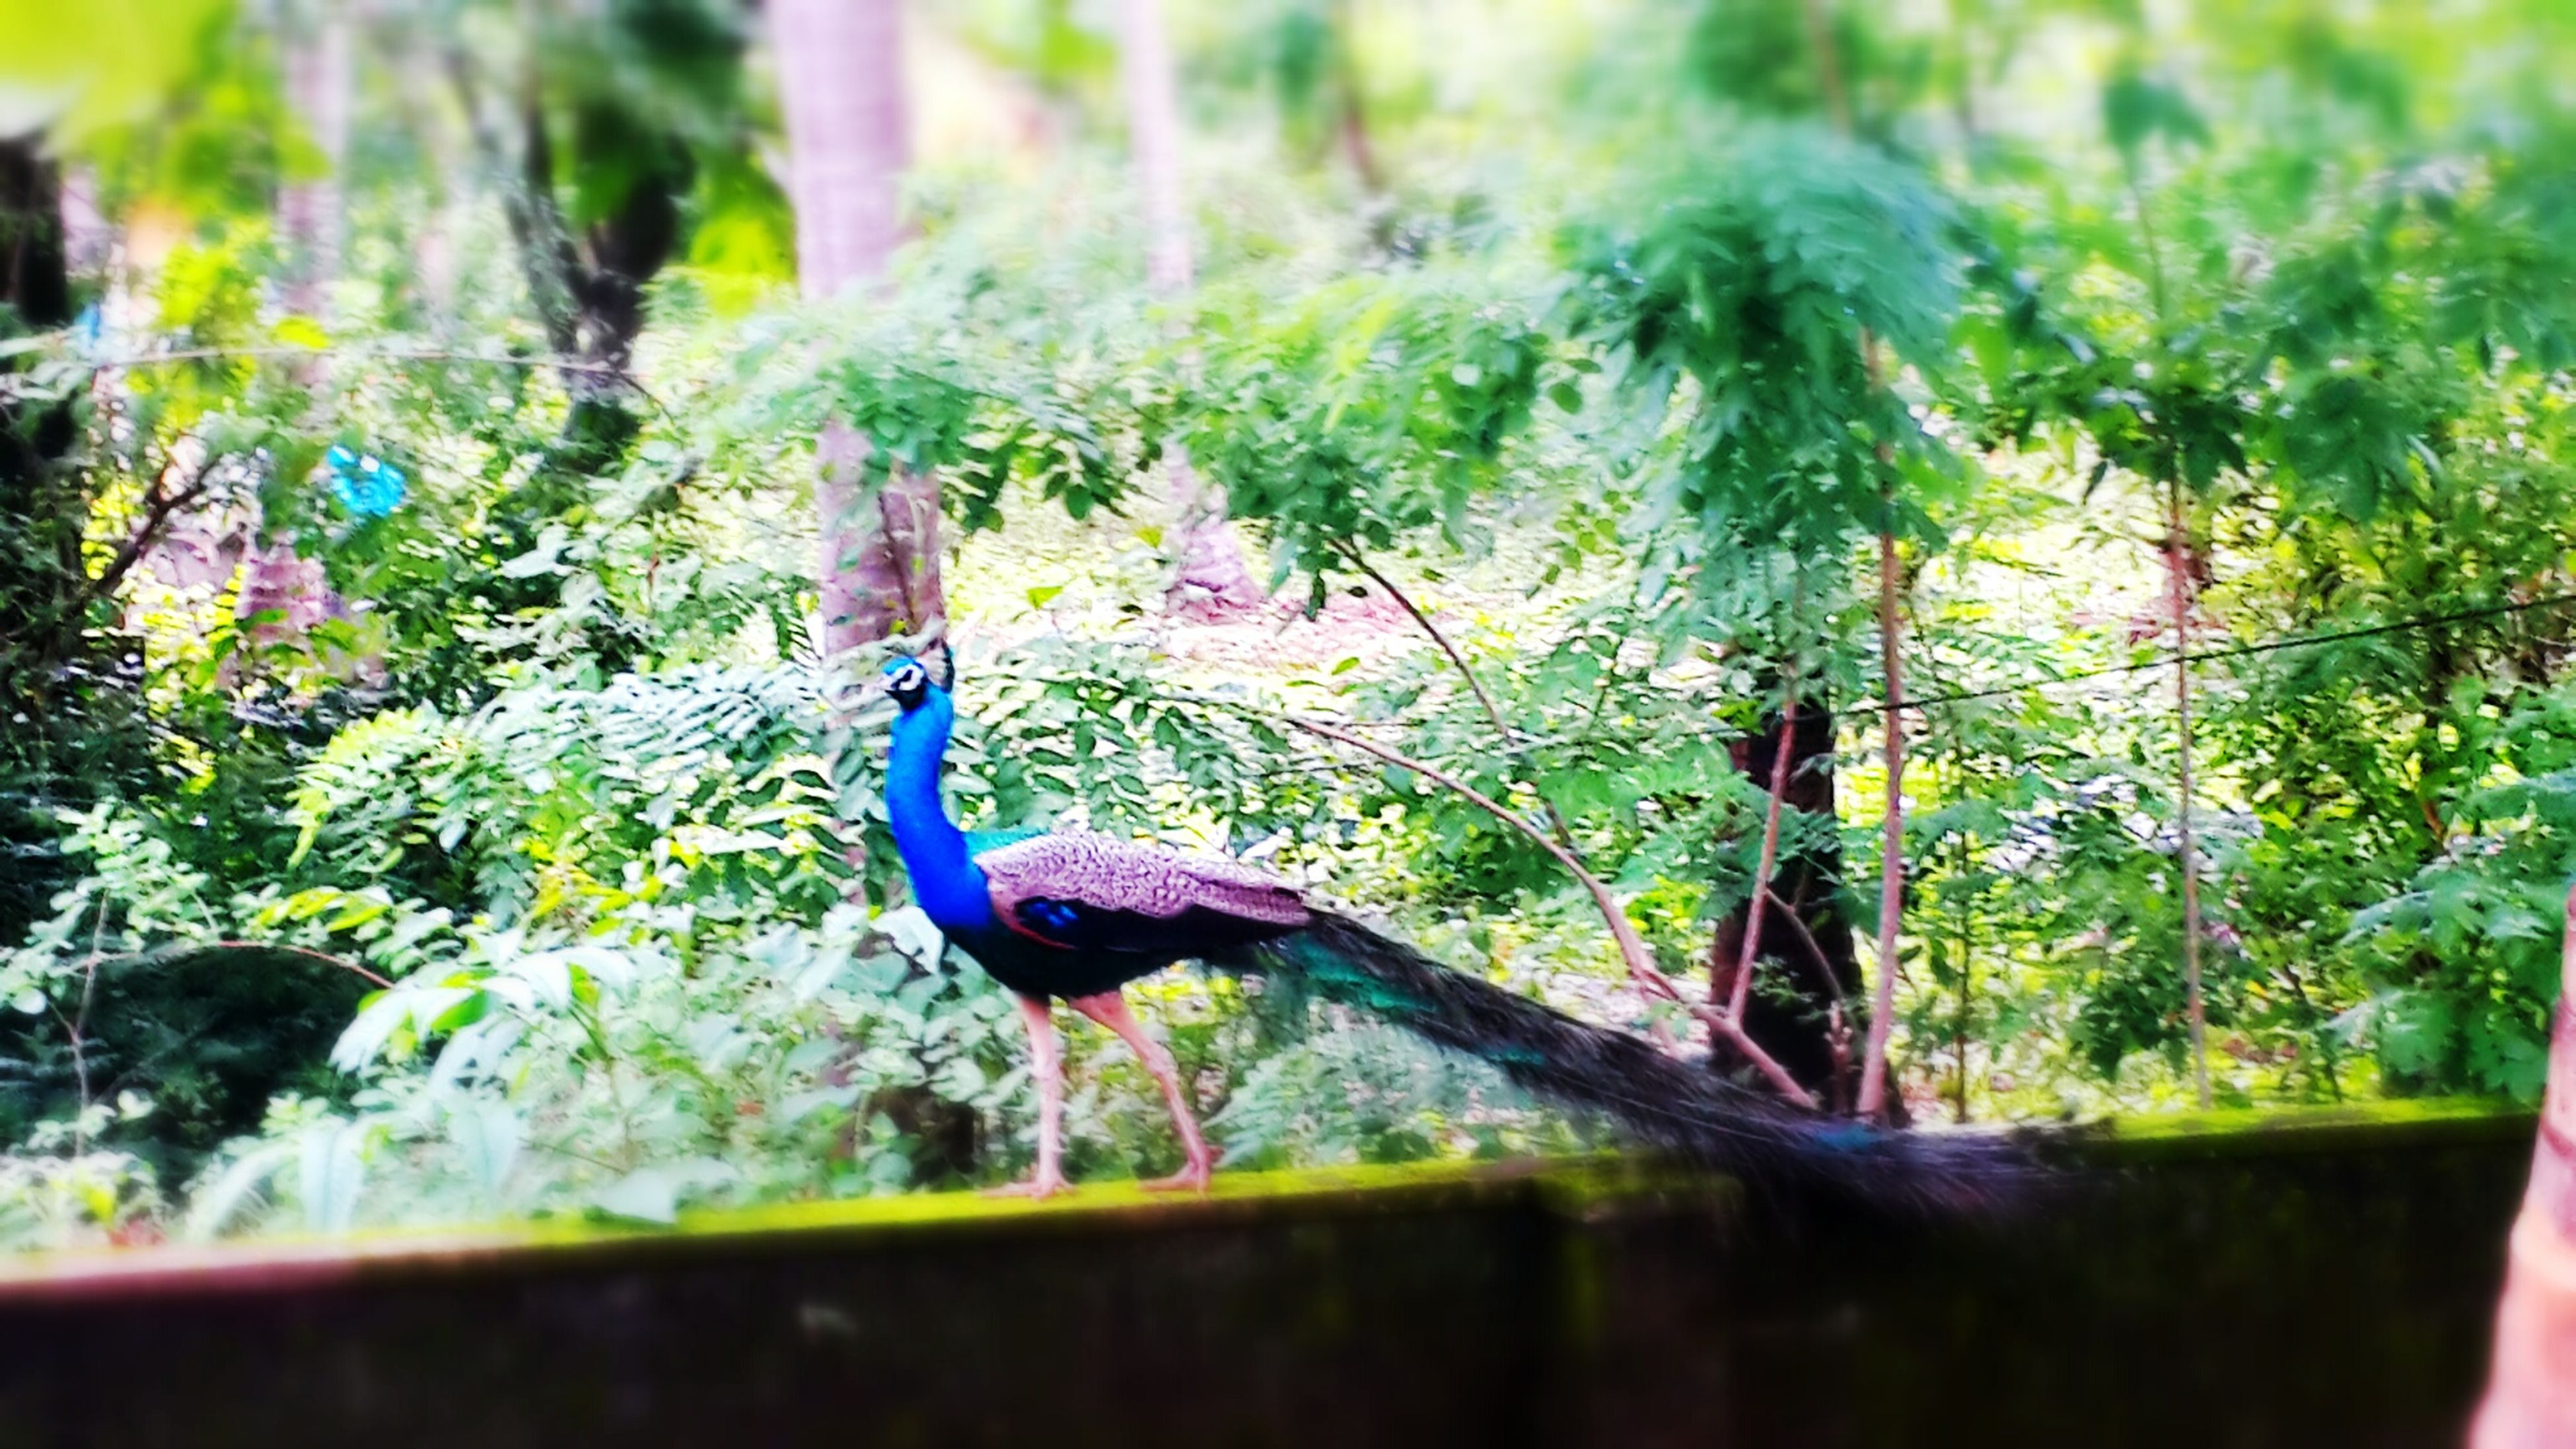 bird, animals in the wild, animal themes, wildlife, one animal, water, tree, nature, green color, beauty in nature, lake, plant, side view, tranquility, outdoors, day, focus on foreground, no people, growth, forest